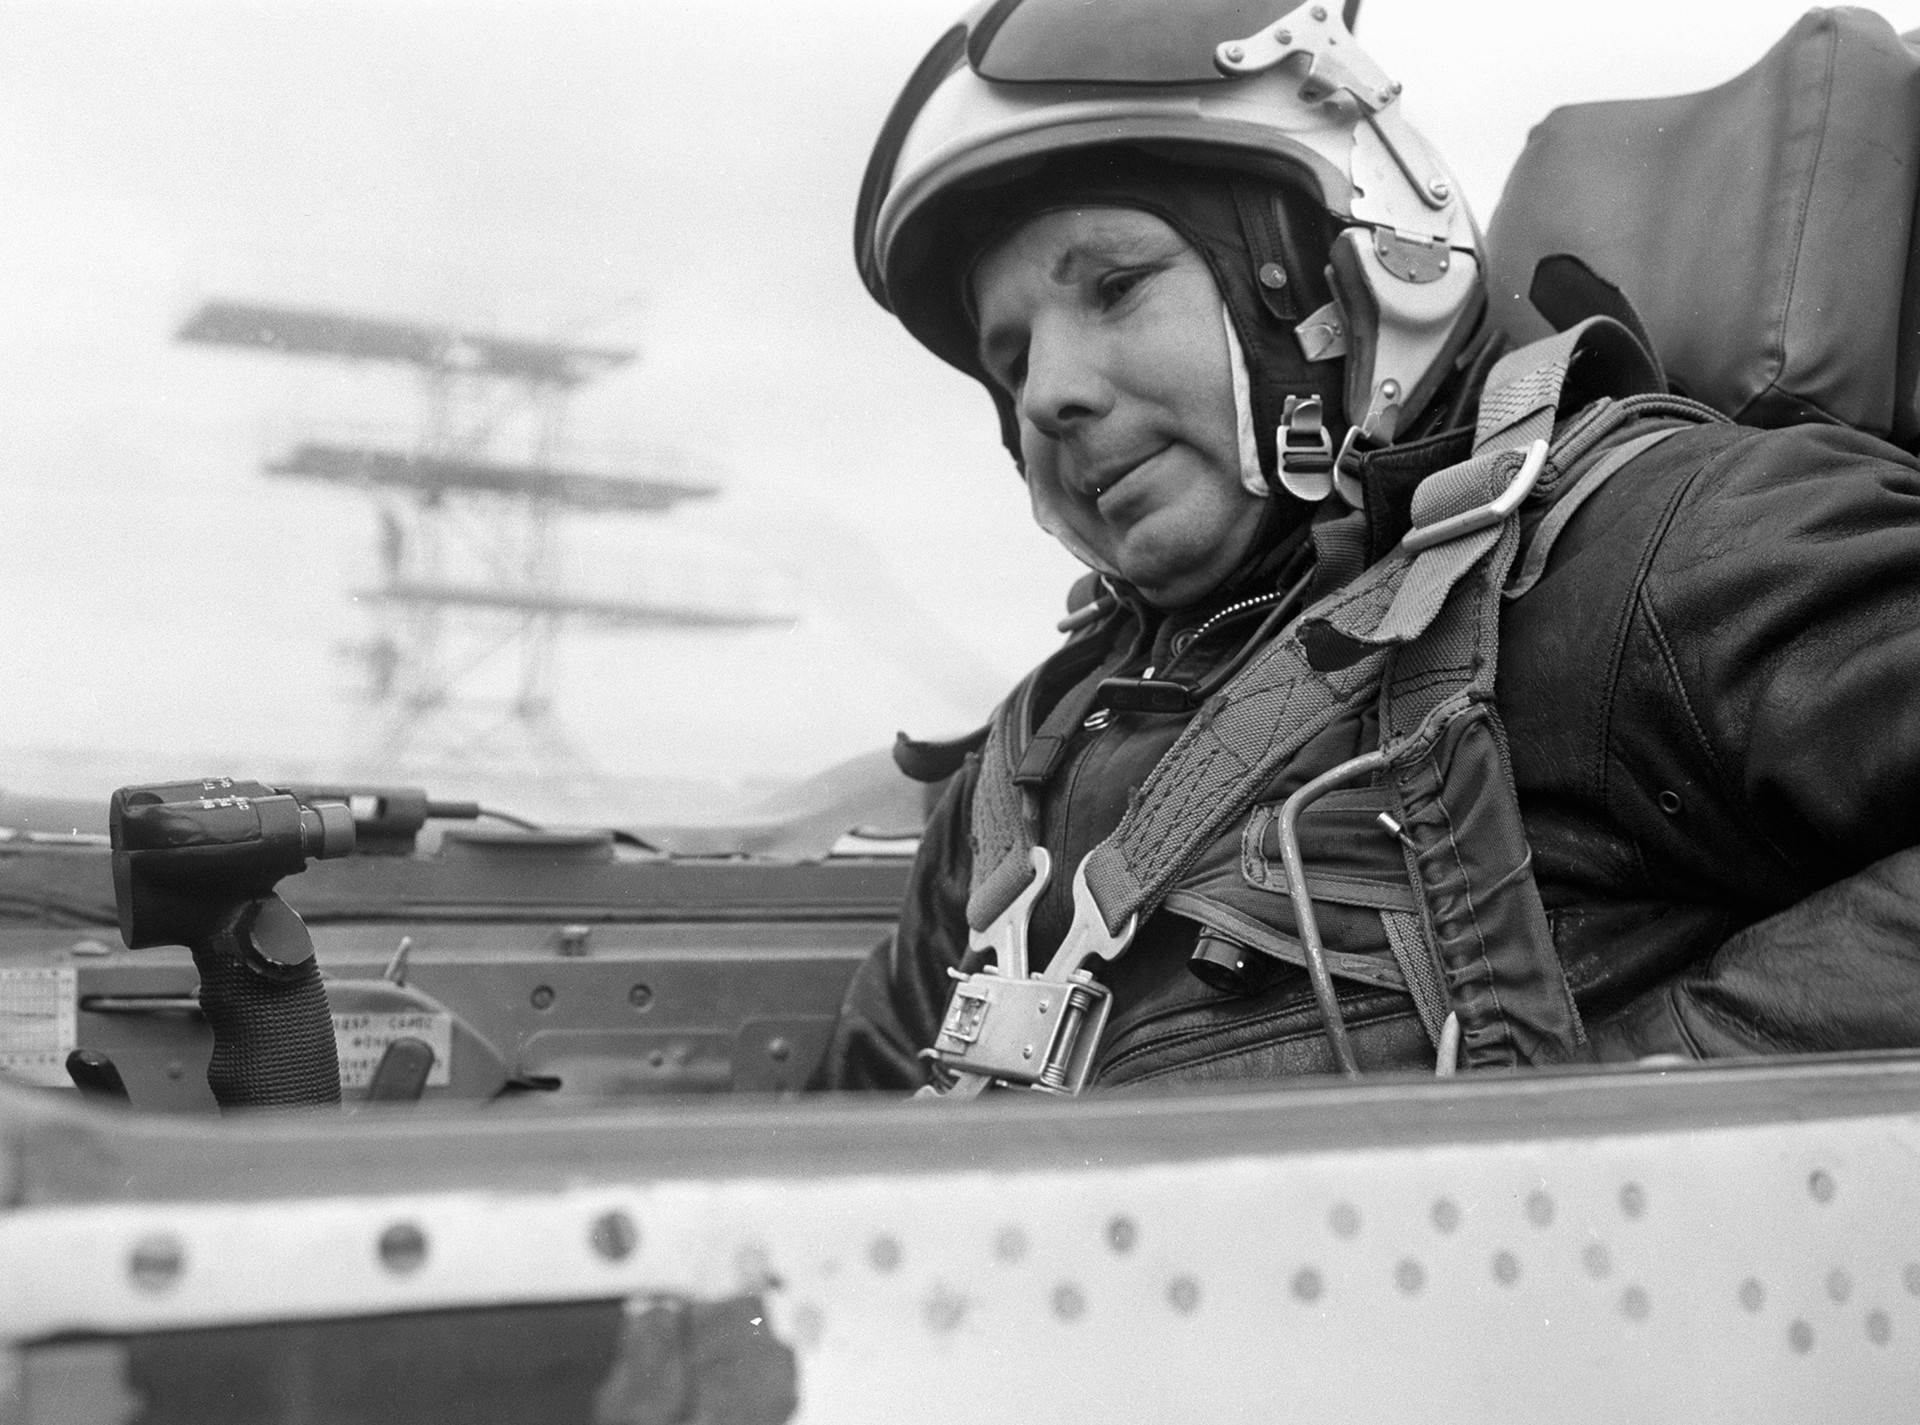 Gagarin preparing for the flight on a MIG-21.